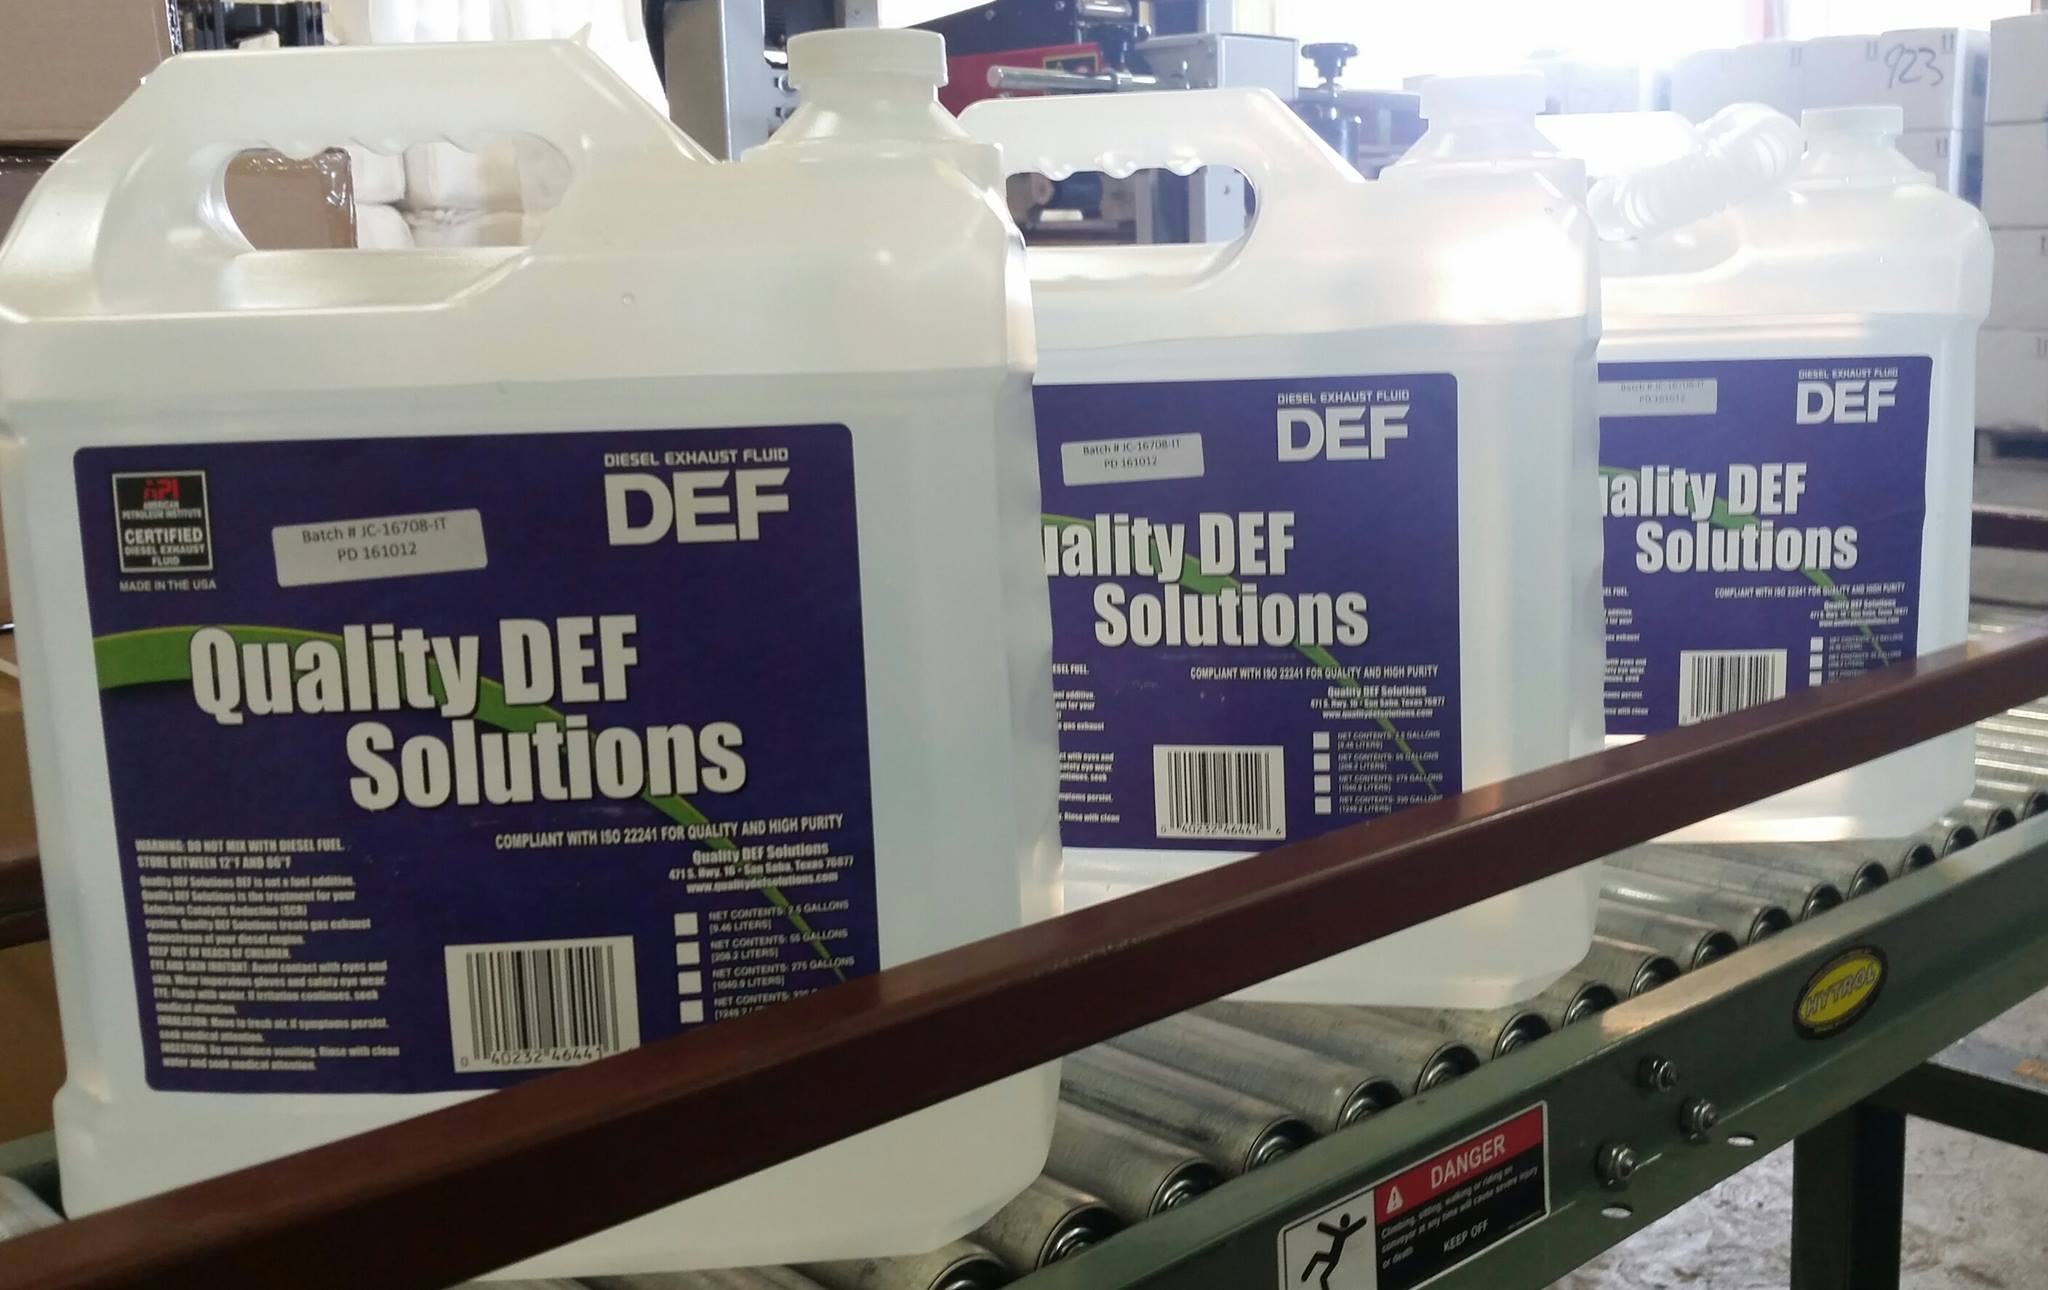 2.5 Gallon Quality DEF Solutions Jug